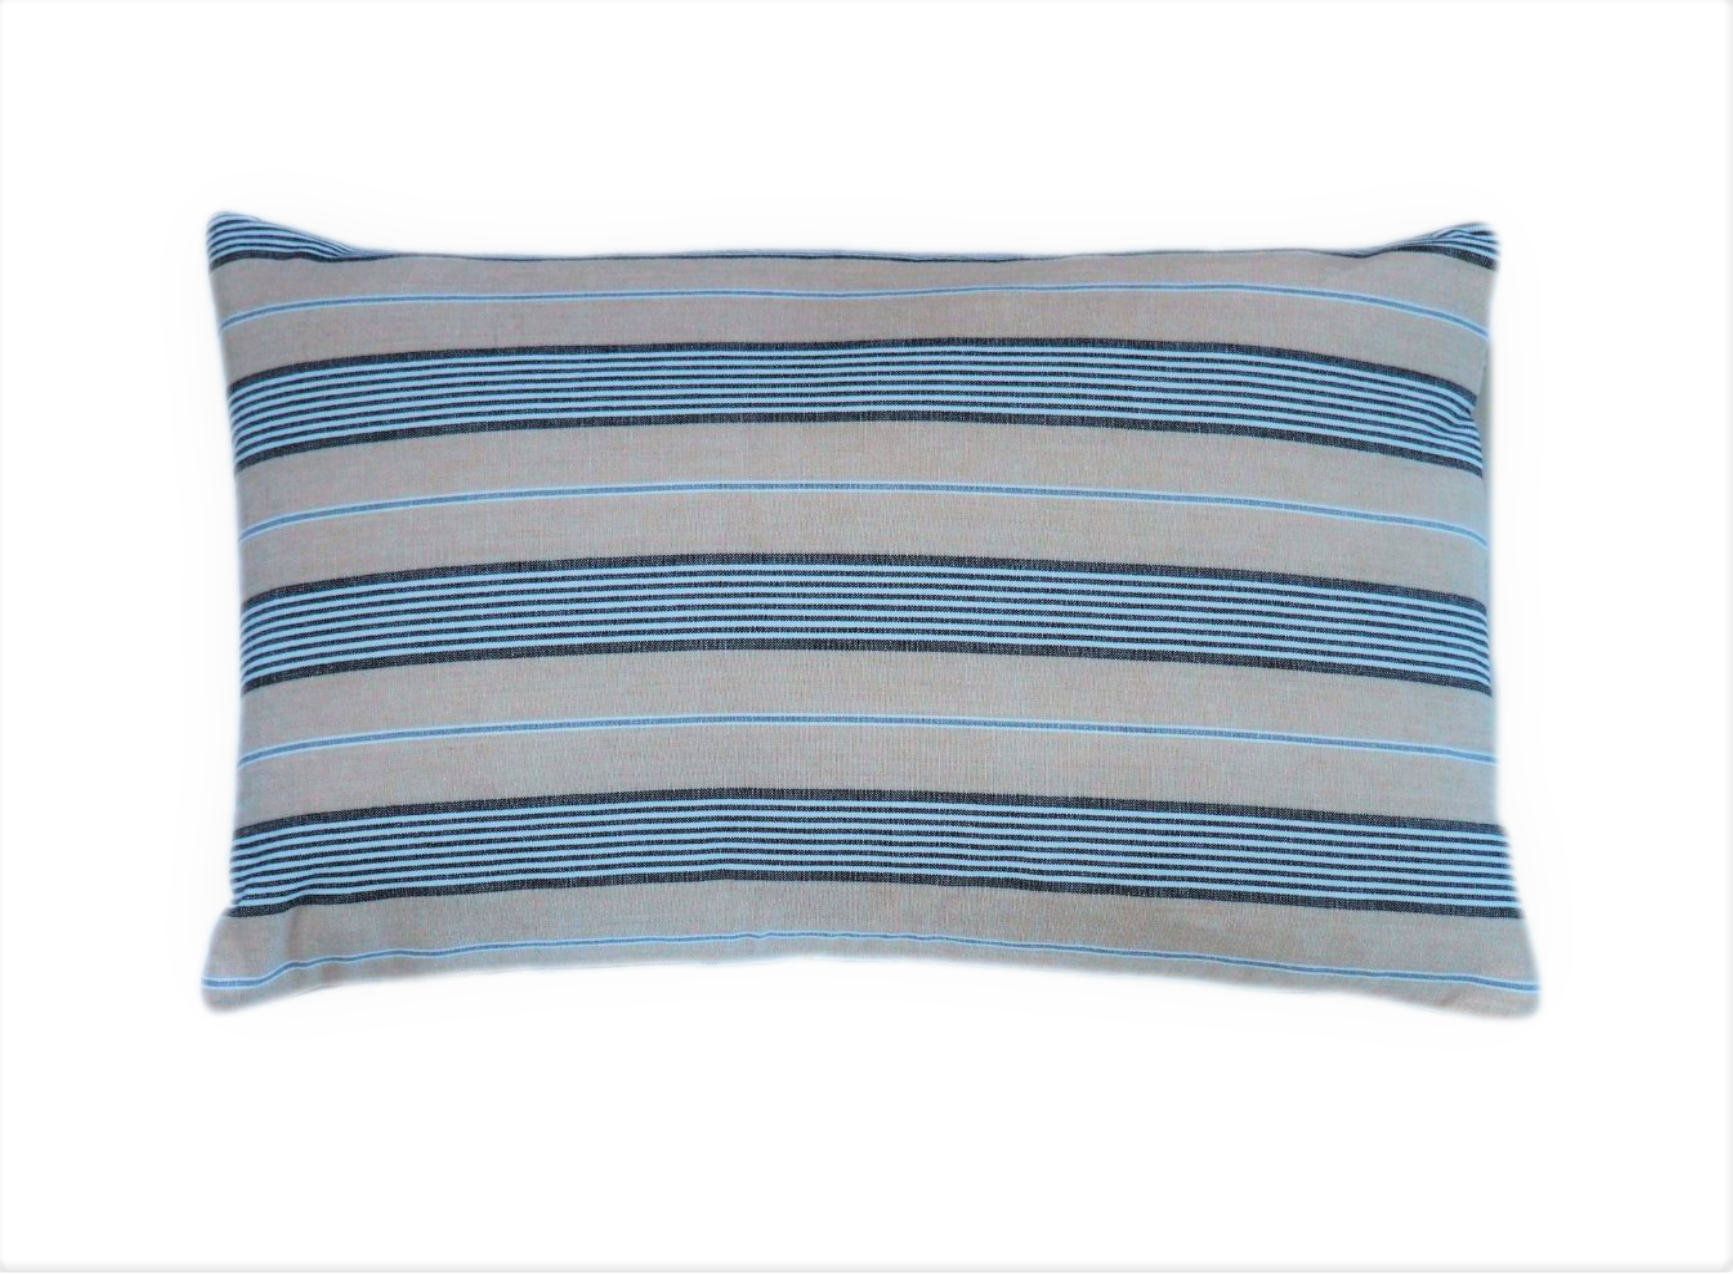 Ethical zero waste blue and beige striped cushion keeping high end textiles out of landfill and creating employment for former refugees